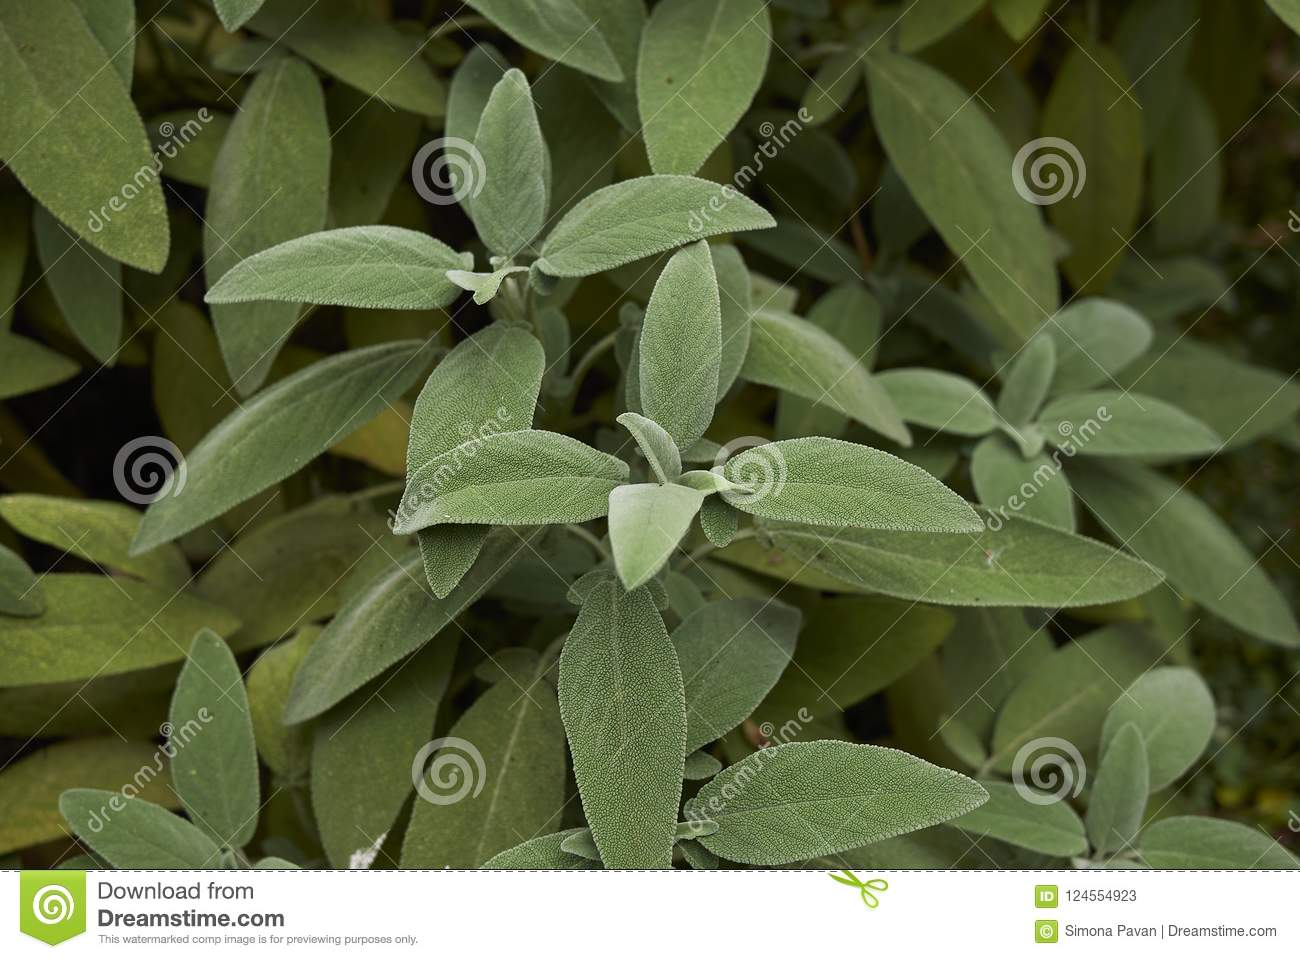 Leaves close up of Salvia officinalis